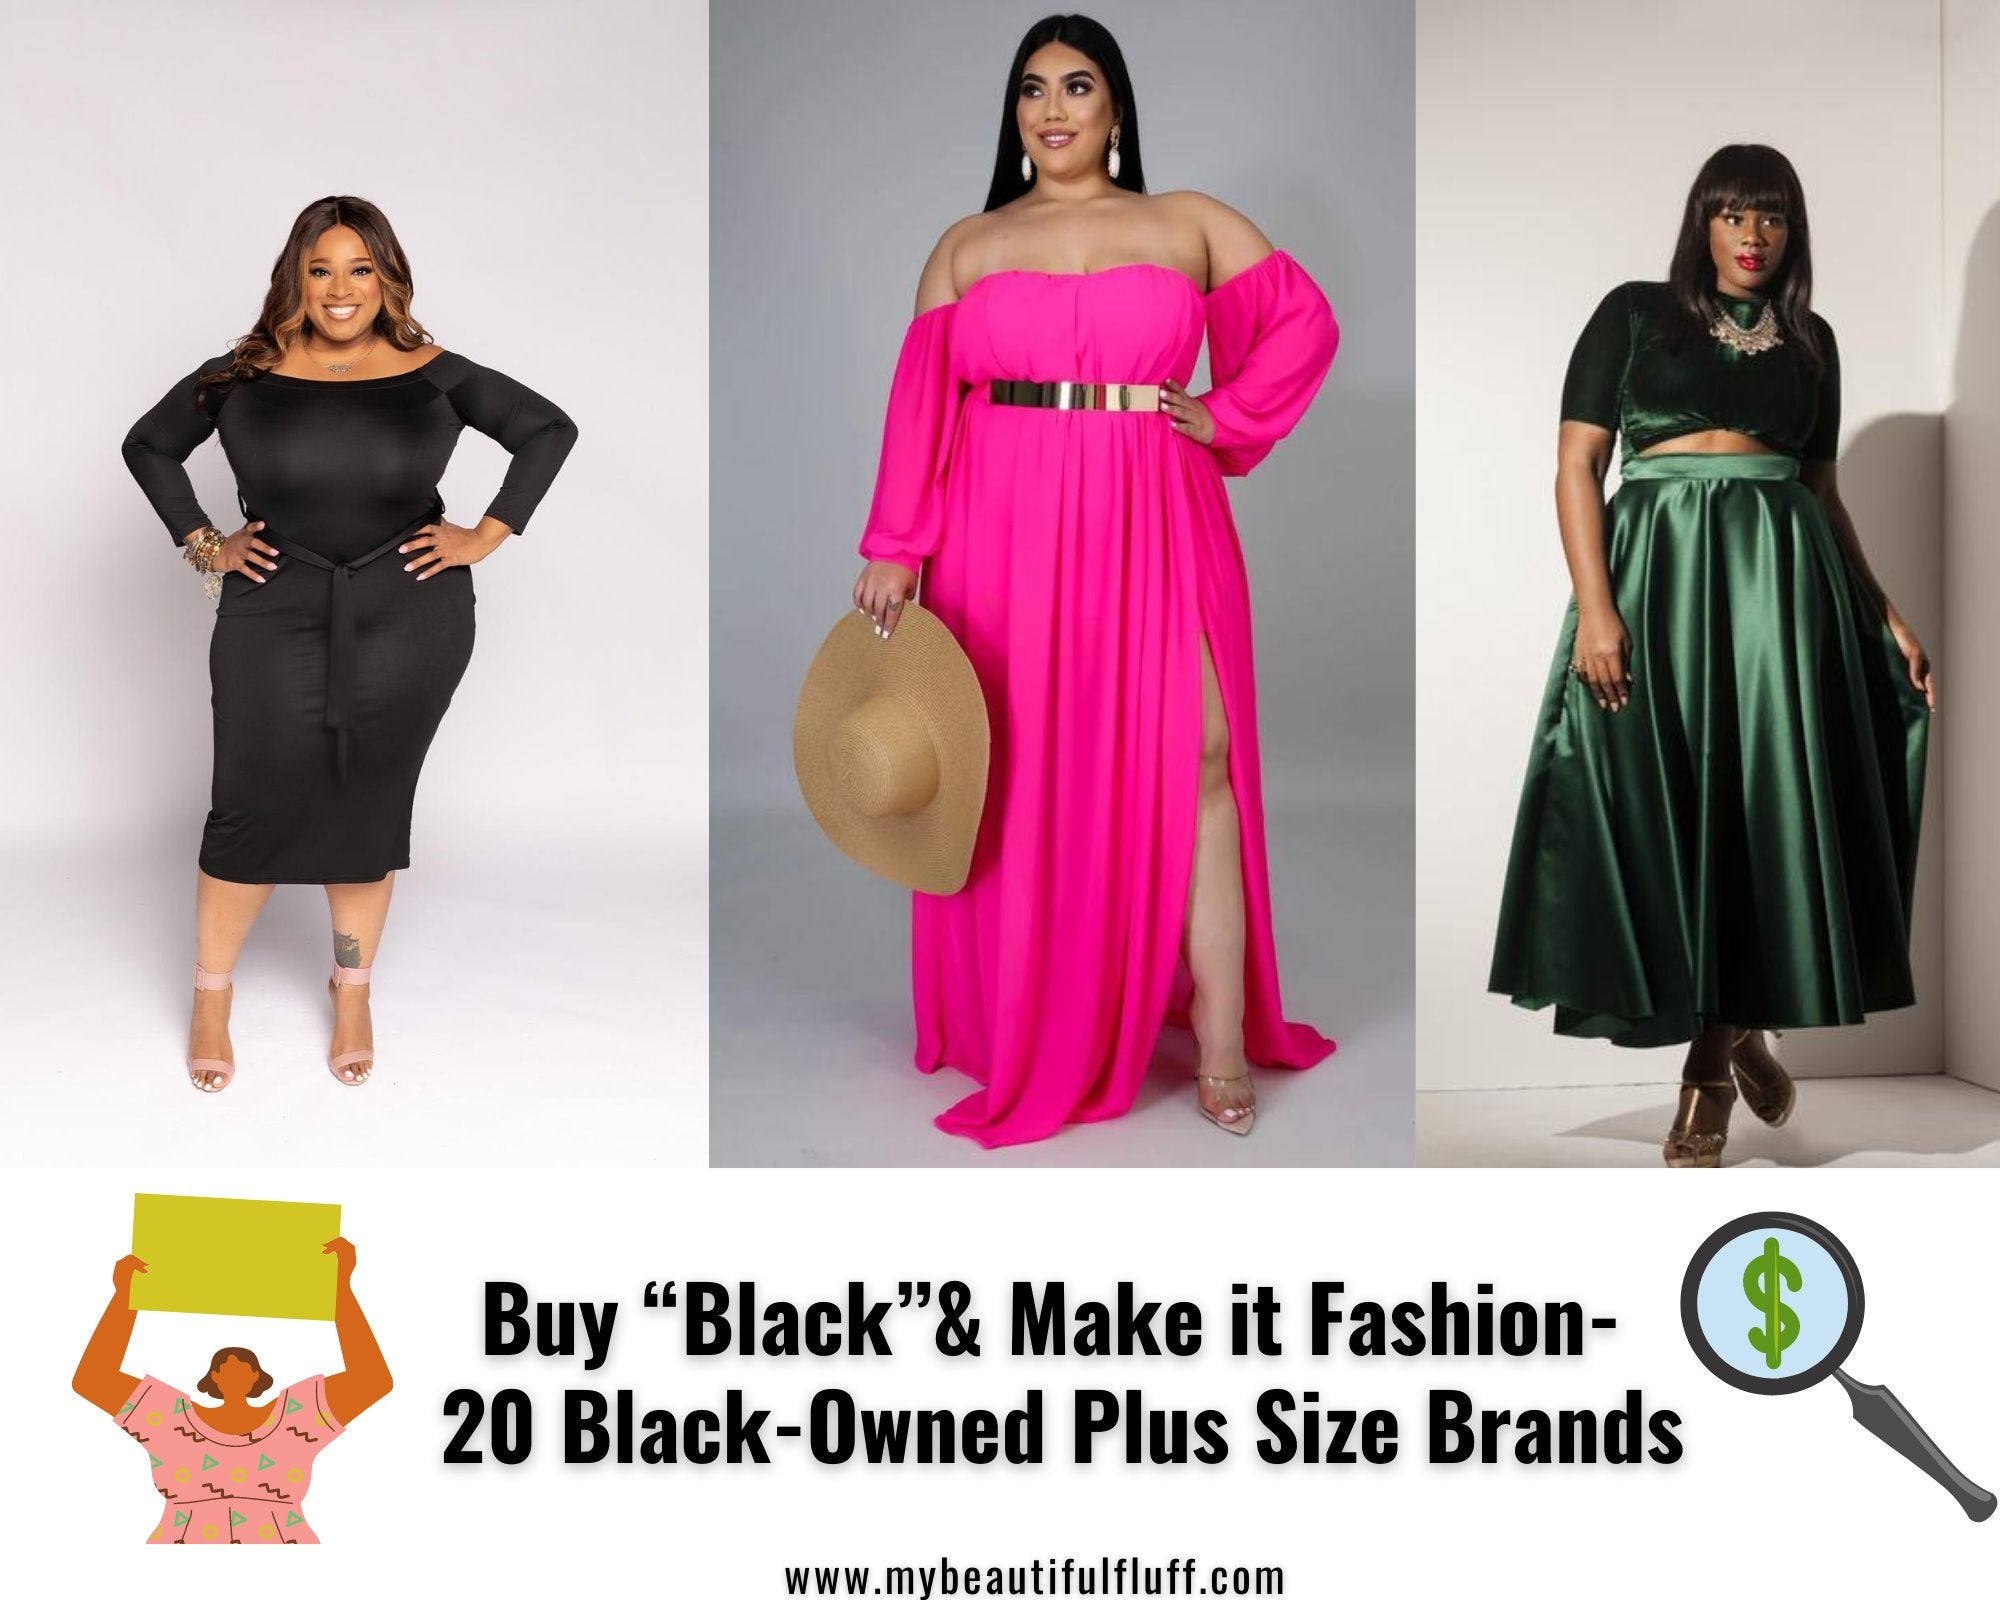 "Buy ""Black"" & Make it Fashion- 20 Black-Owned Plus Size Brands"